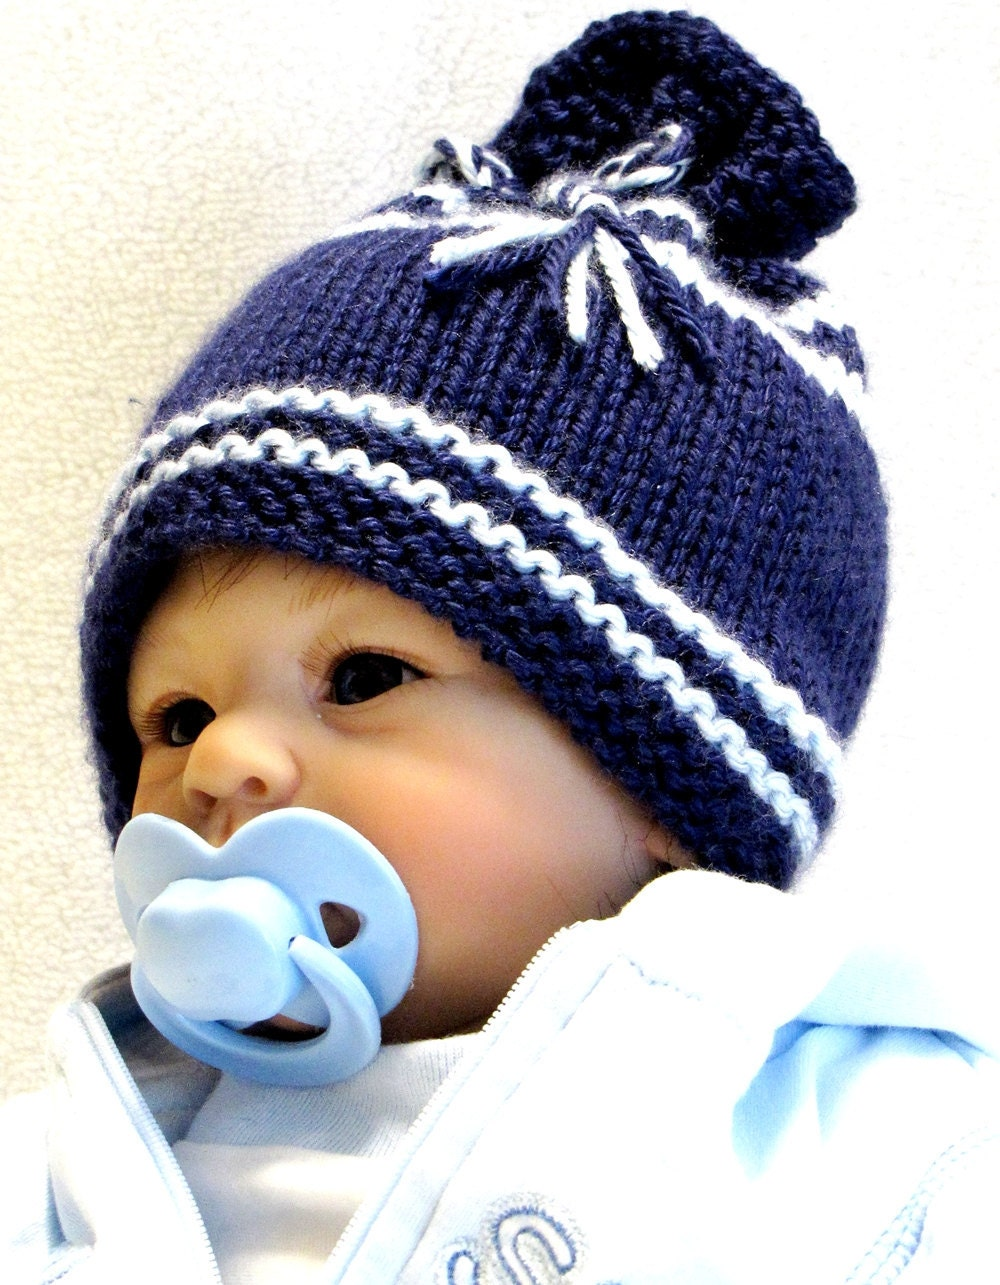 KNITTING PATTERN Newborn EZ Knit Baby Hat Pattern Great